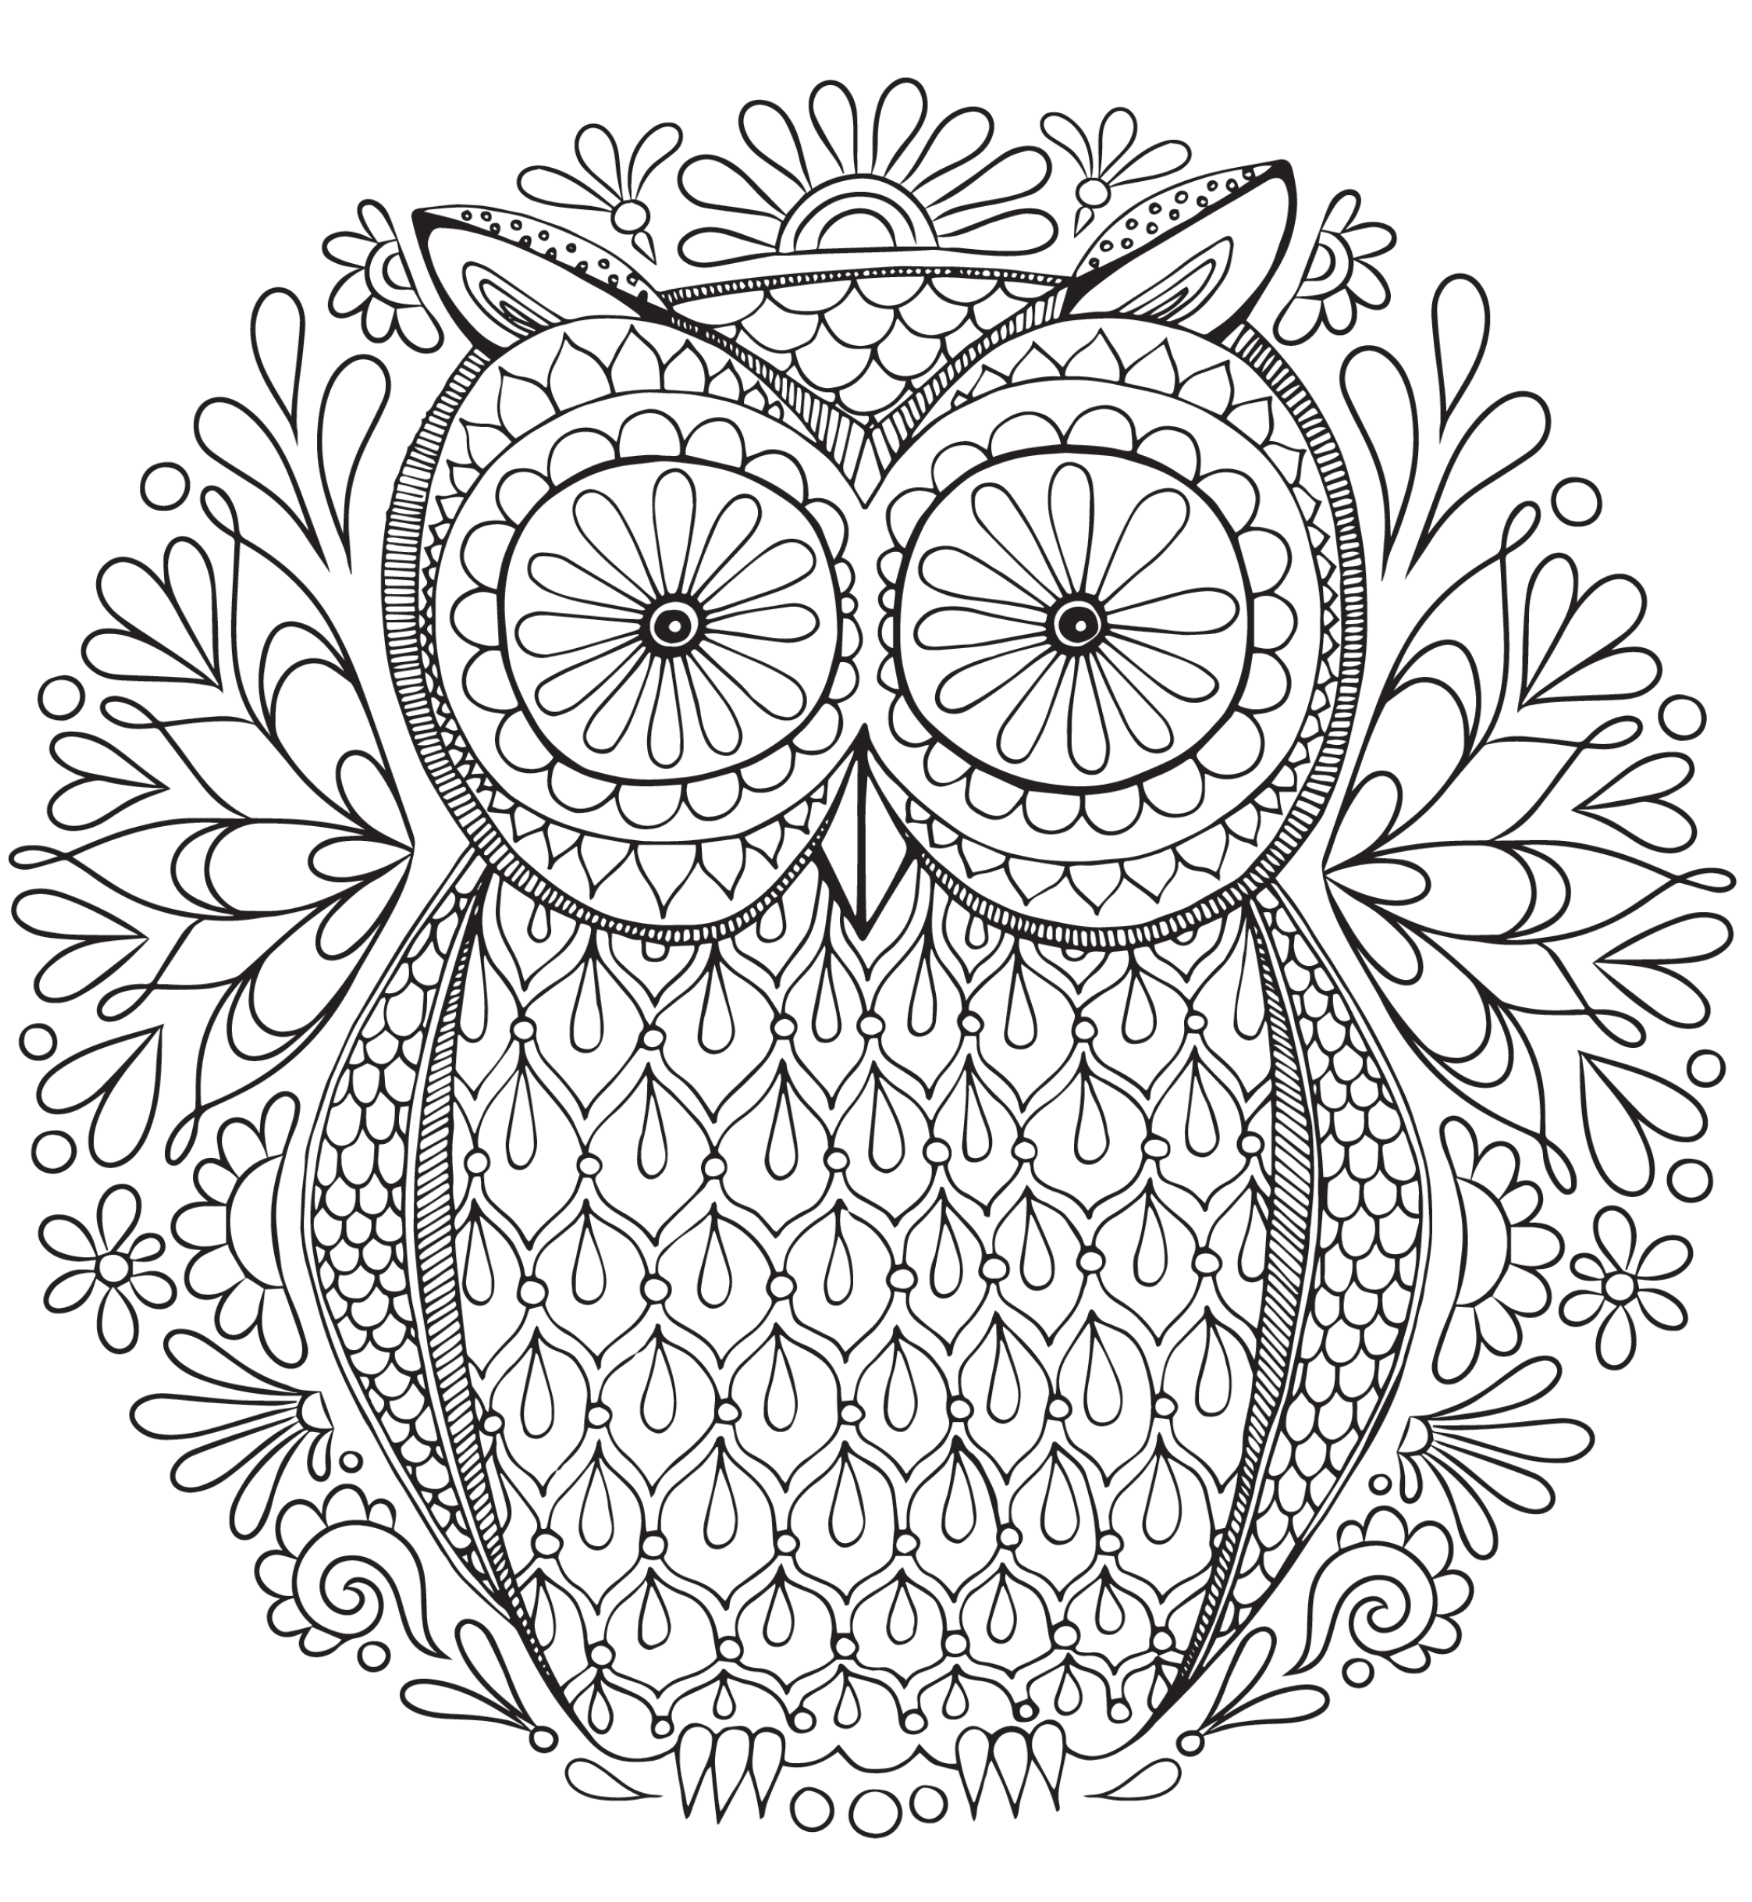 aduly coloring pages - photo#8